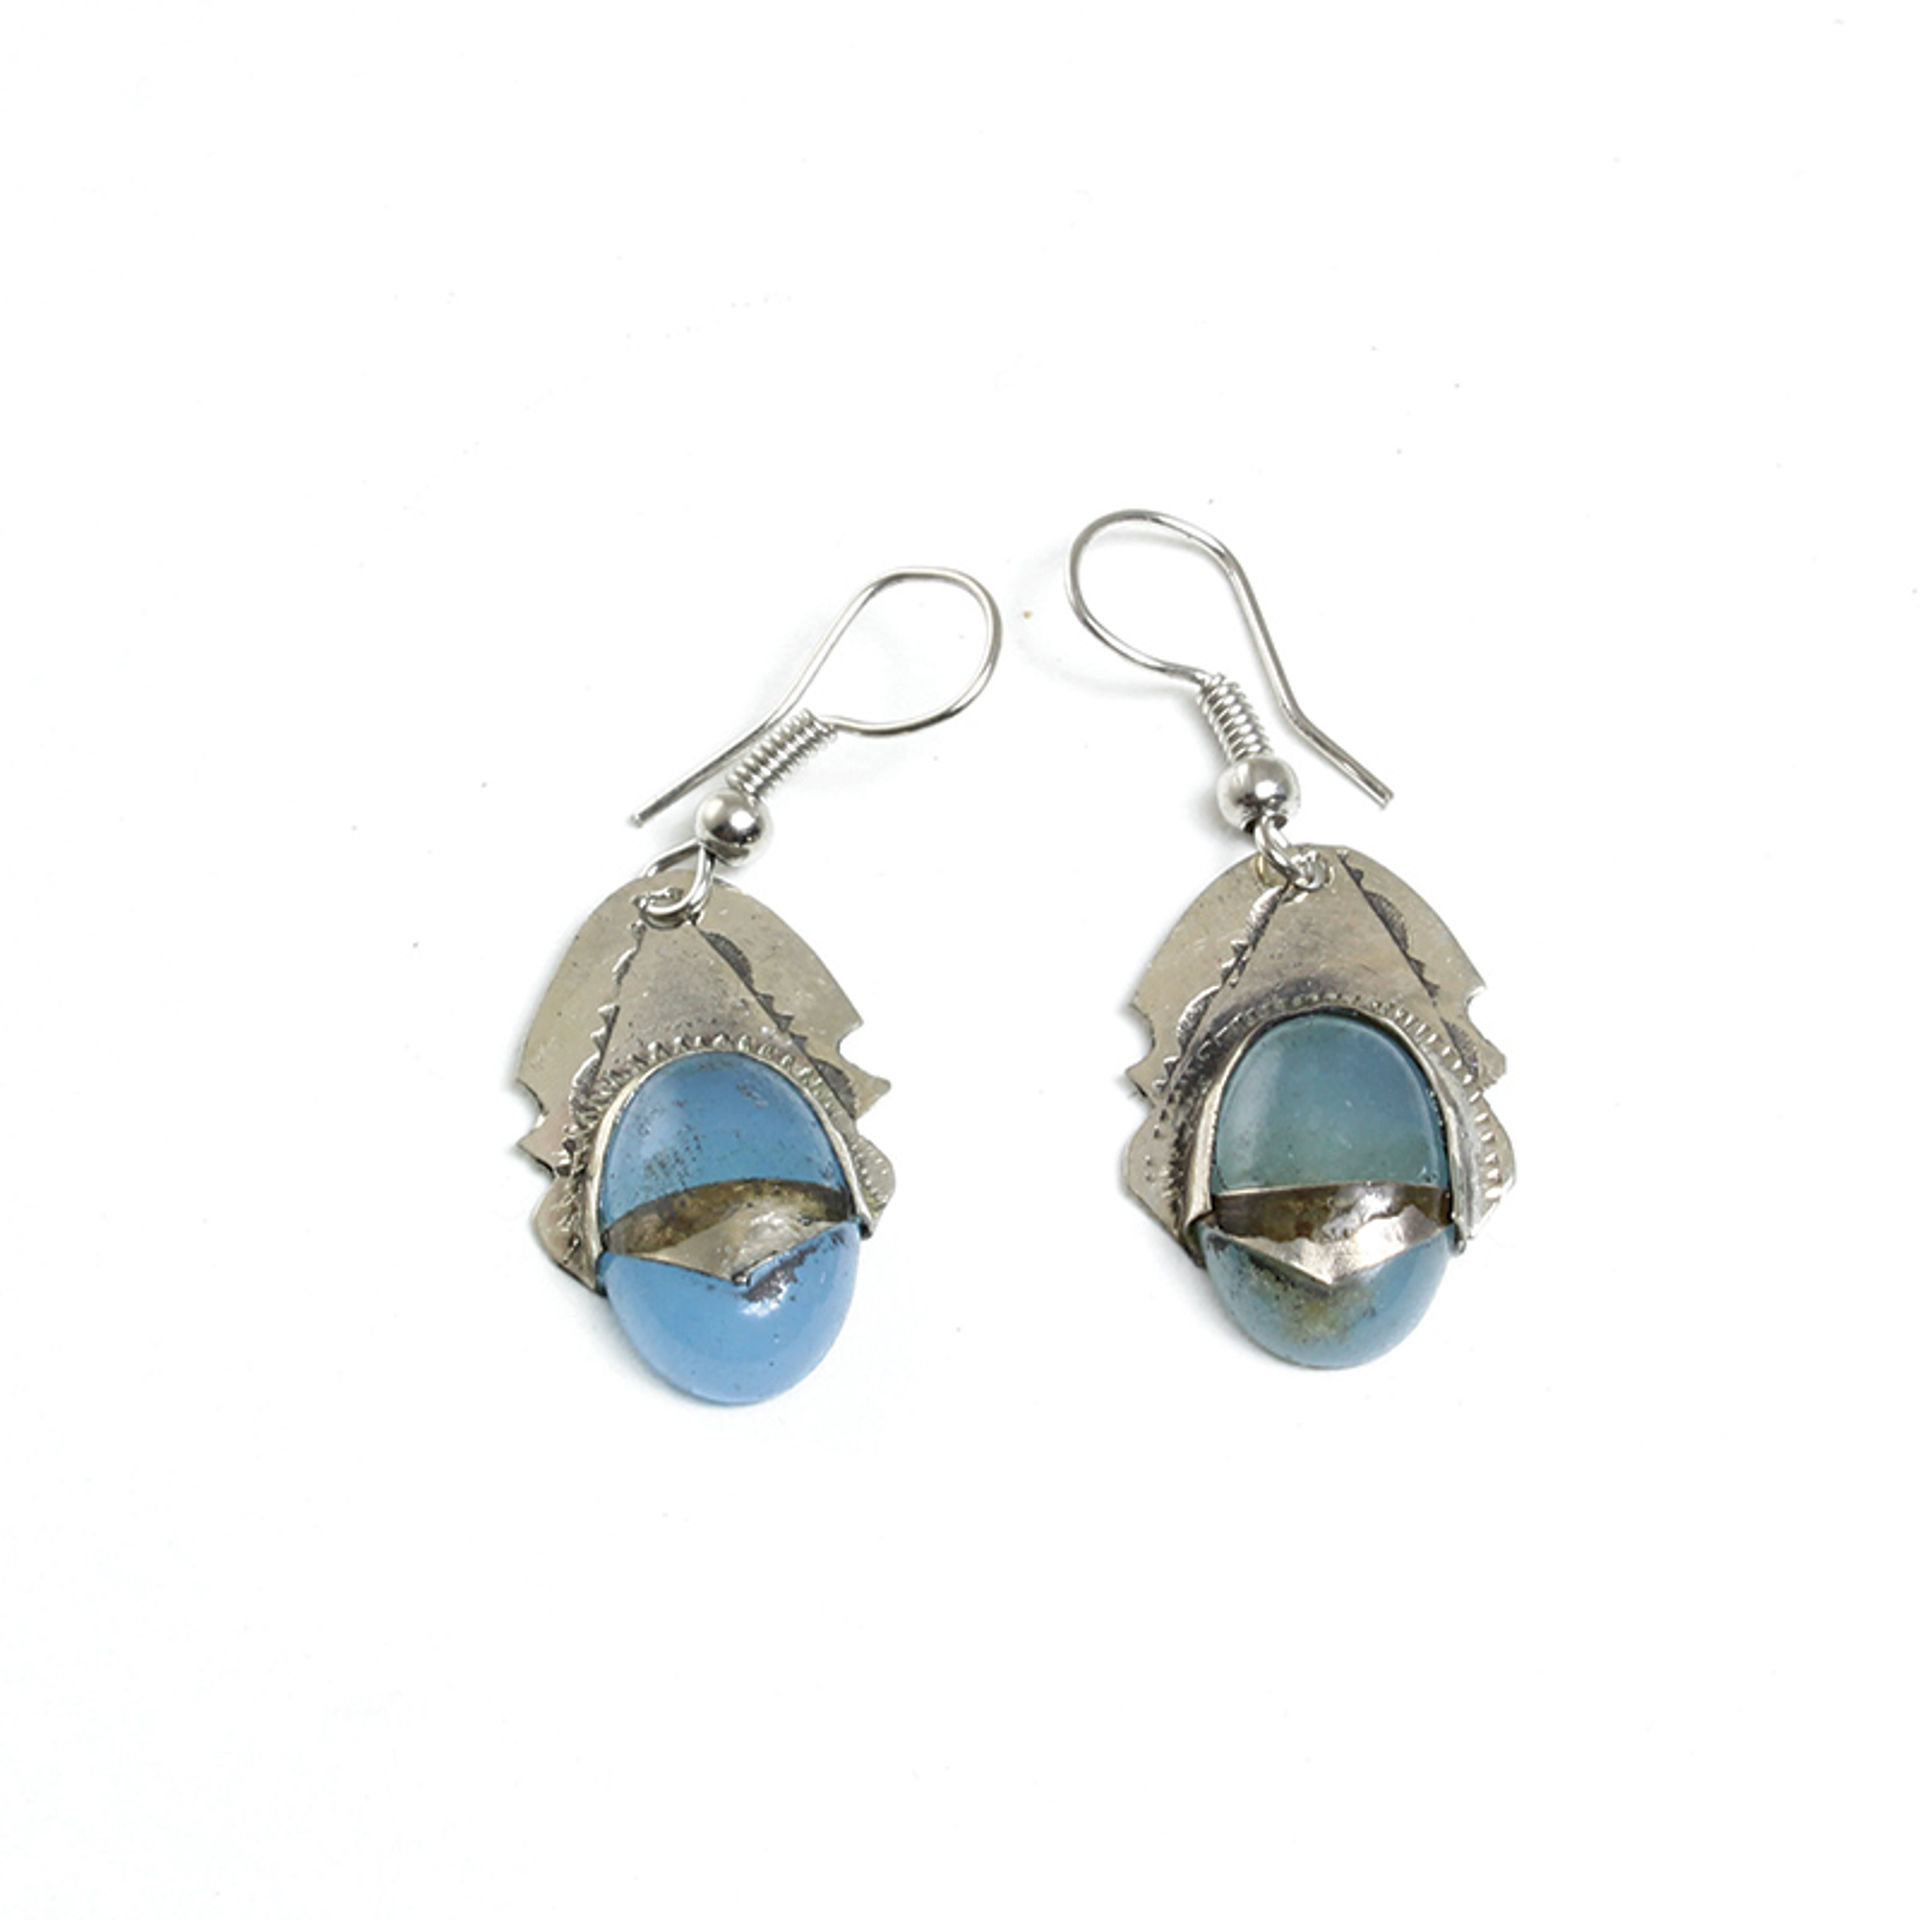 Picture of Tuareg Earrings with Blue Gem